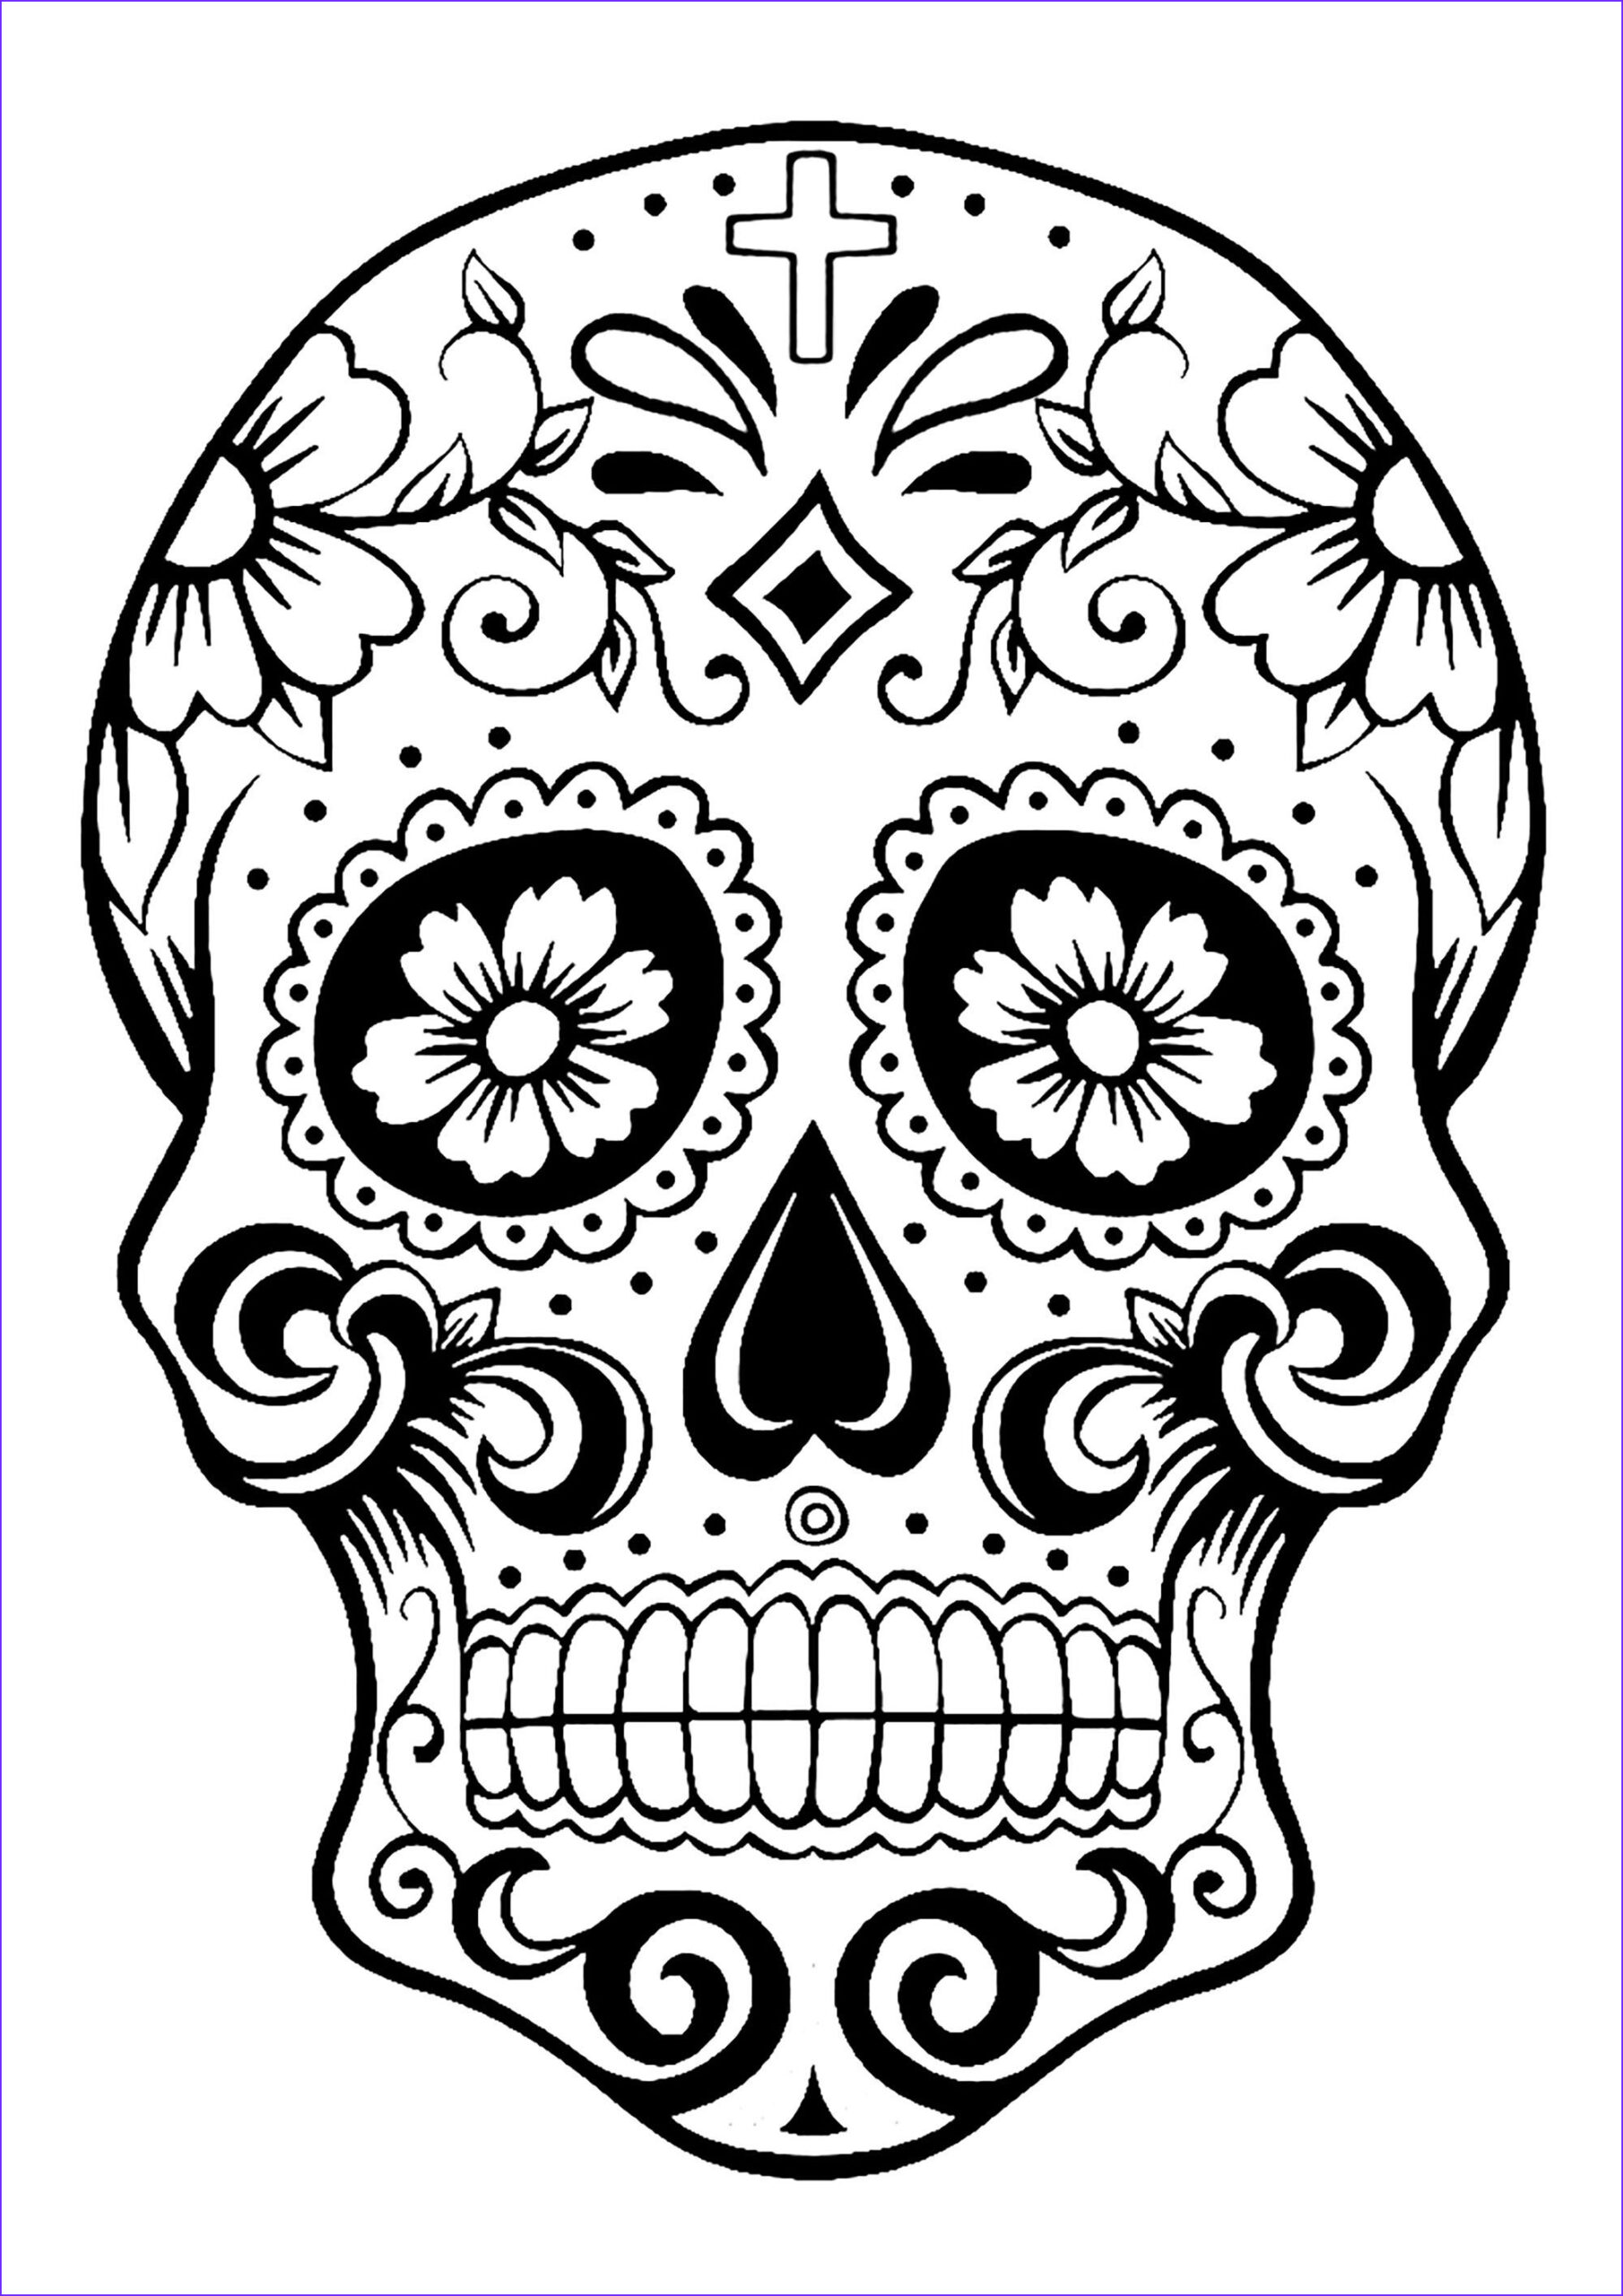 Dia De Los Muertos Coloring Sheets Best Of Stock Skull Coloring Pages for Adults